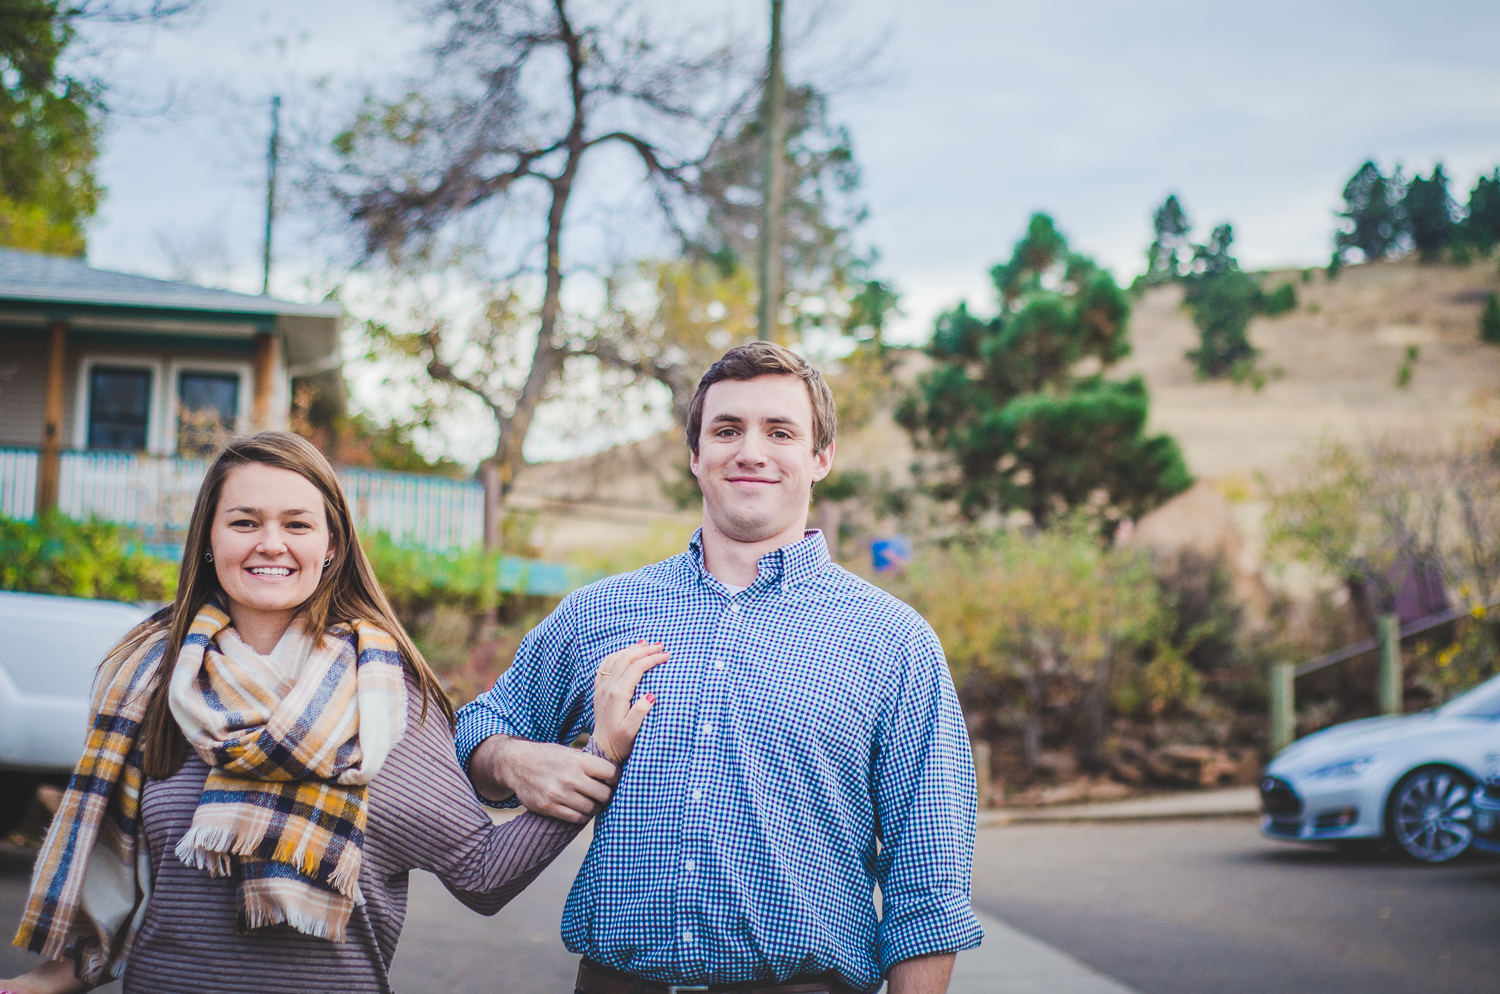 Ann&Beau-Engagements-BLOG-6677.jpg